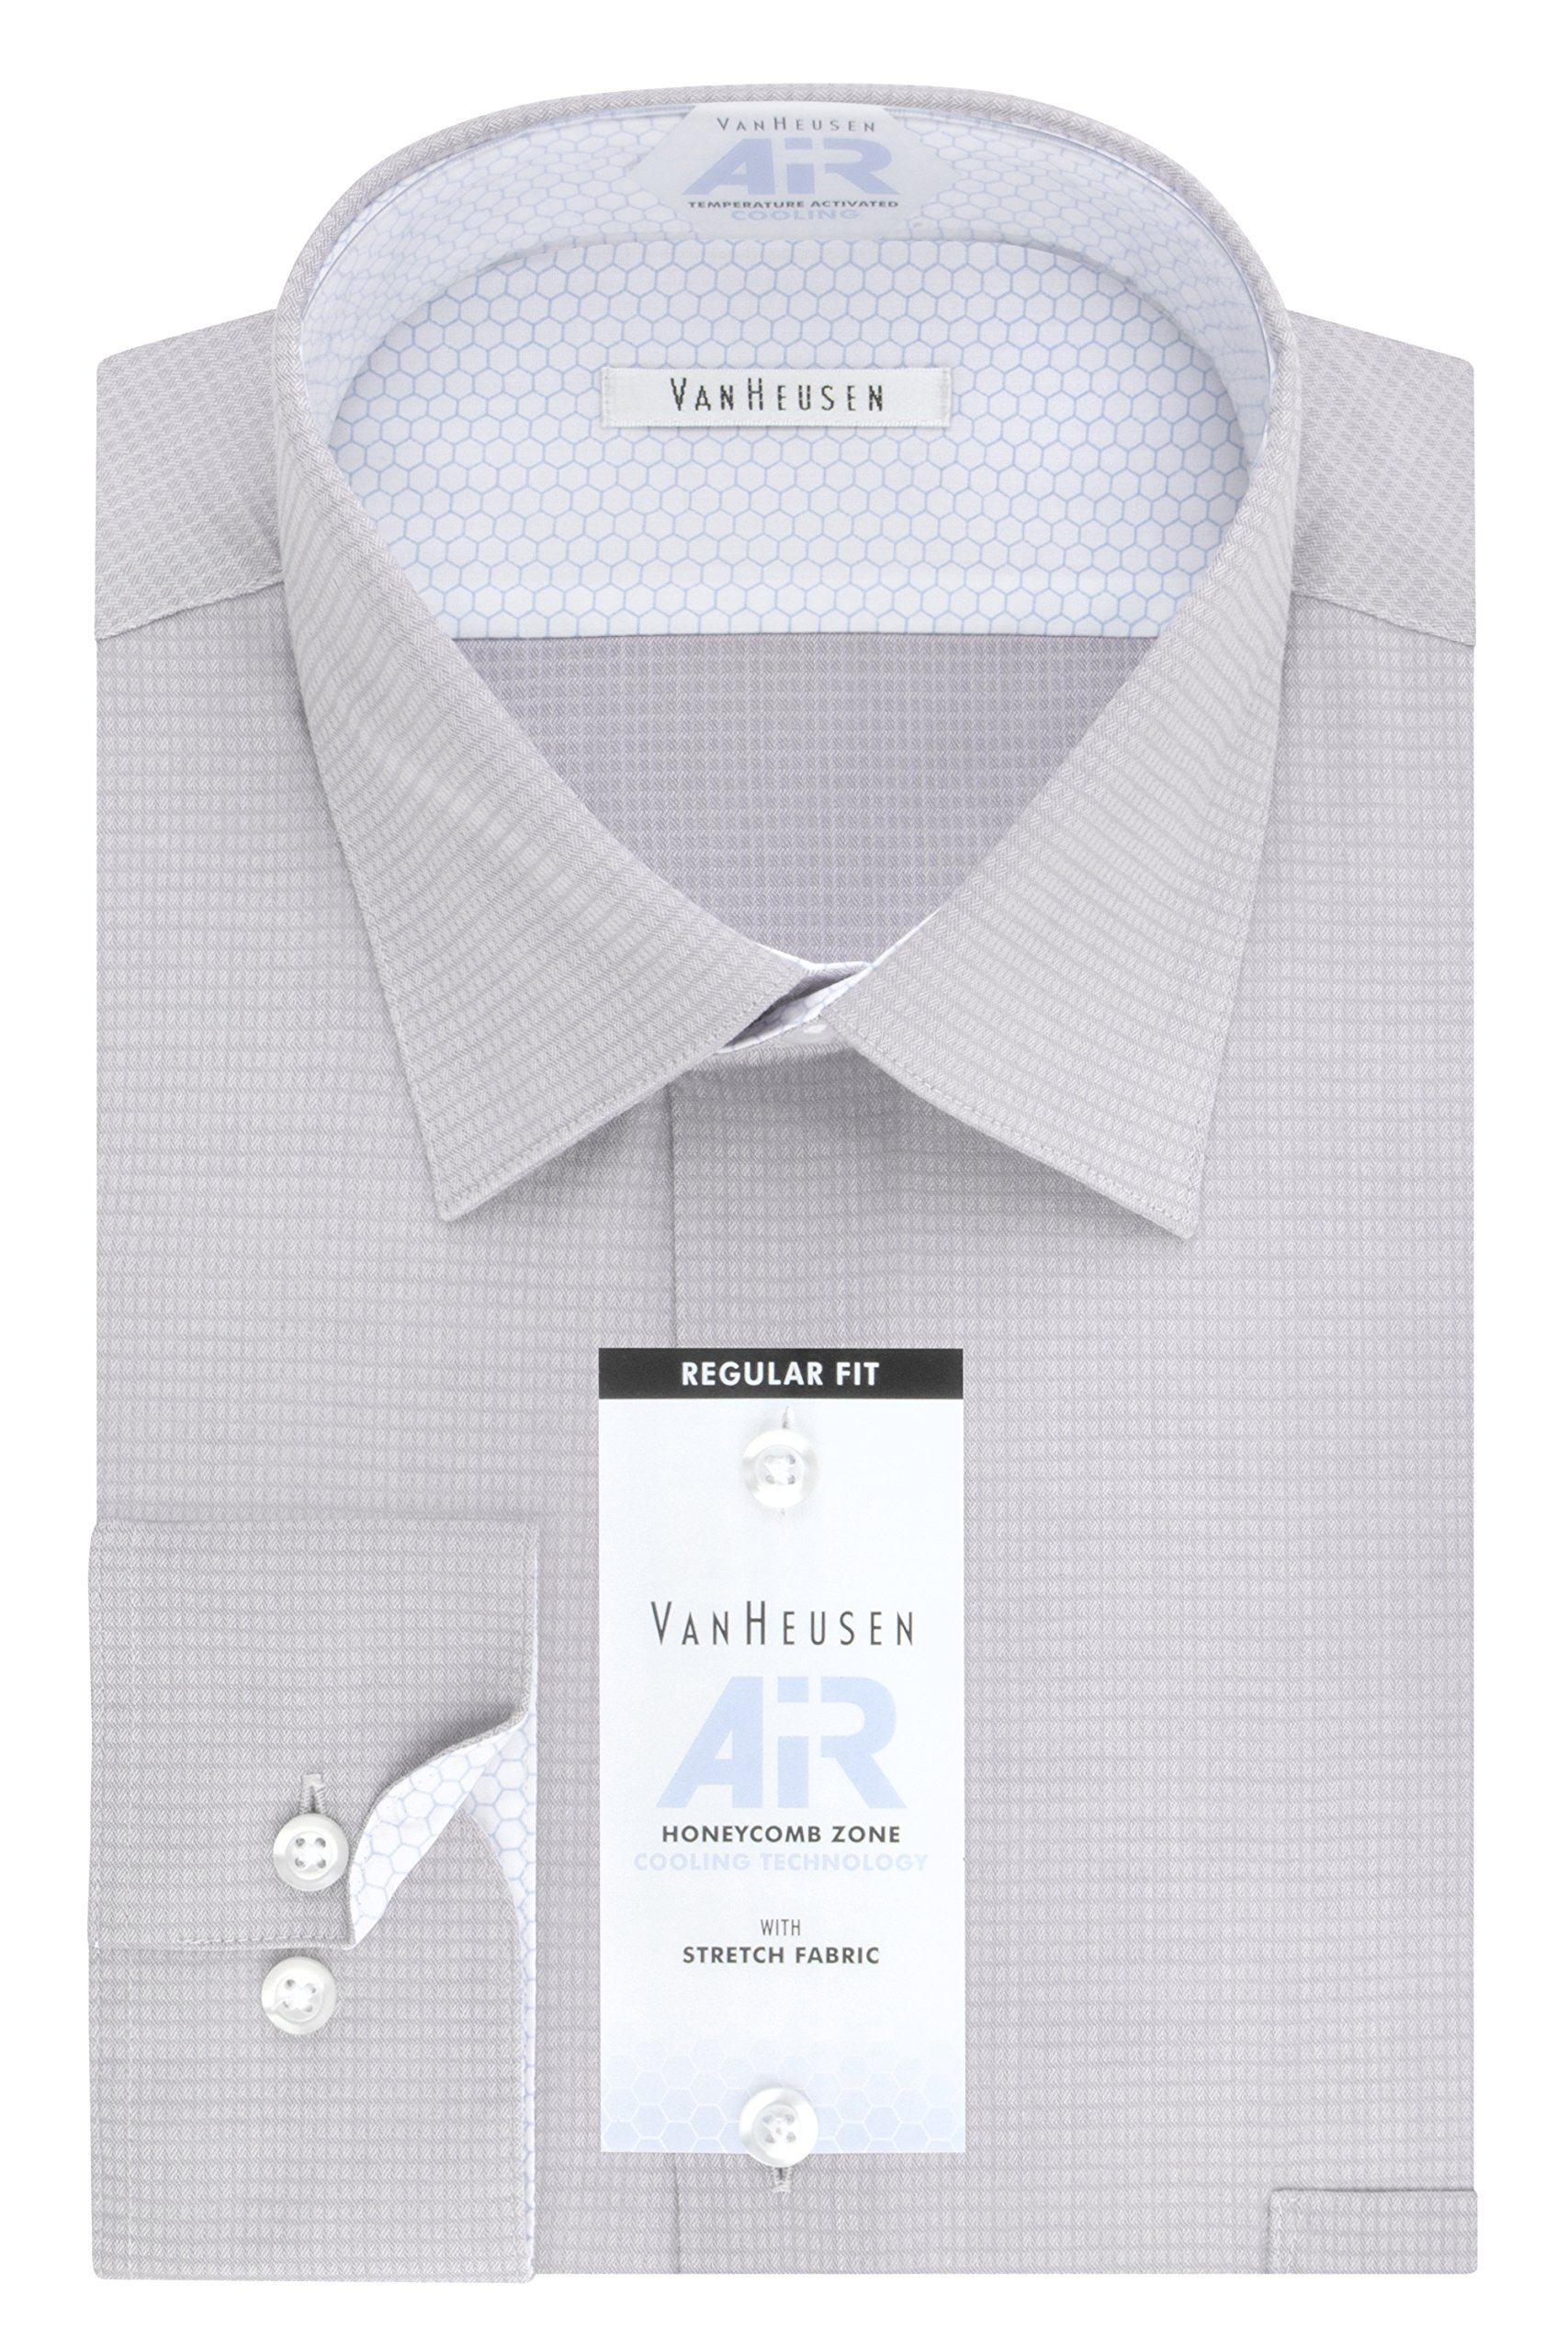 Van Heusen Men's Air Regular Fit Solid Spread Collar Dress Shirt, Aluminum, 15.5'' Neck 32''-33'' Sleeve